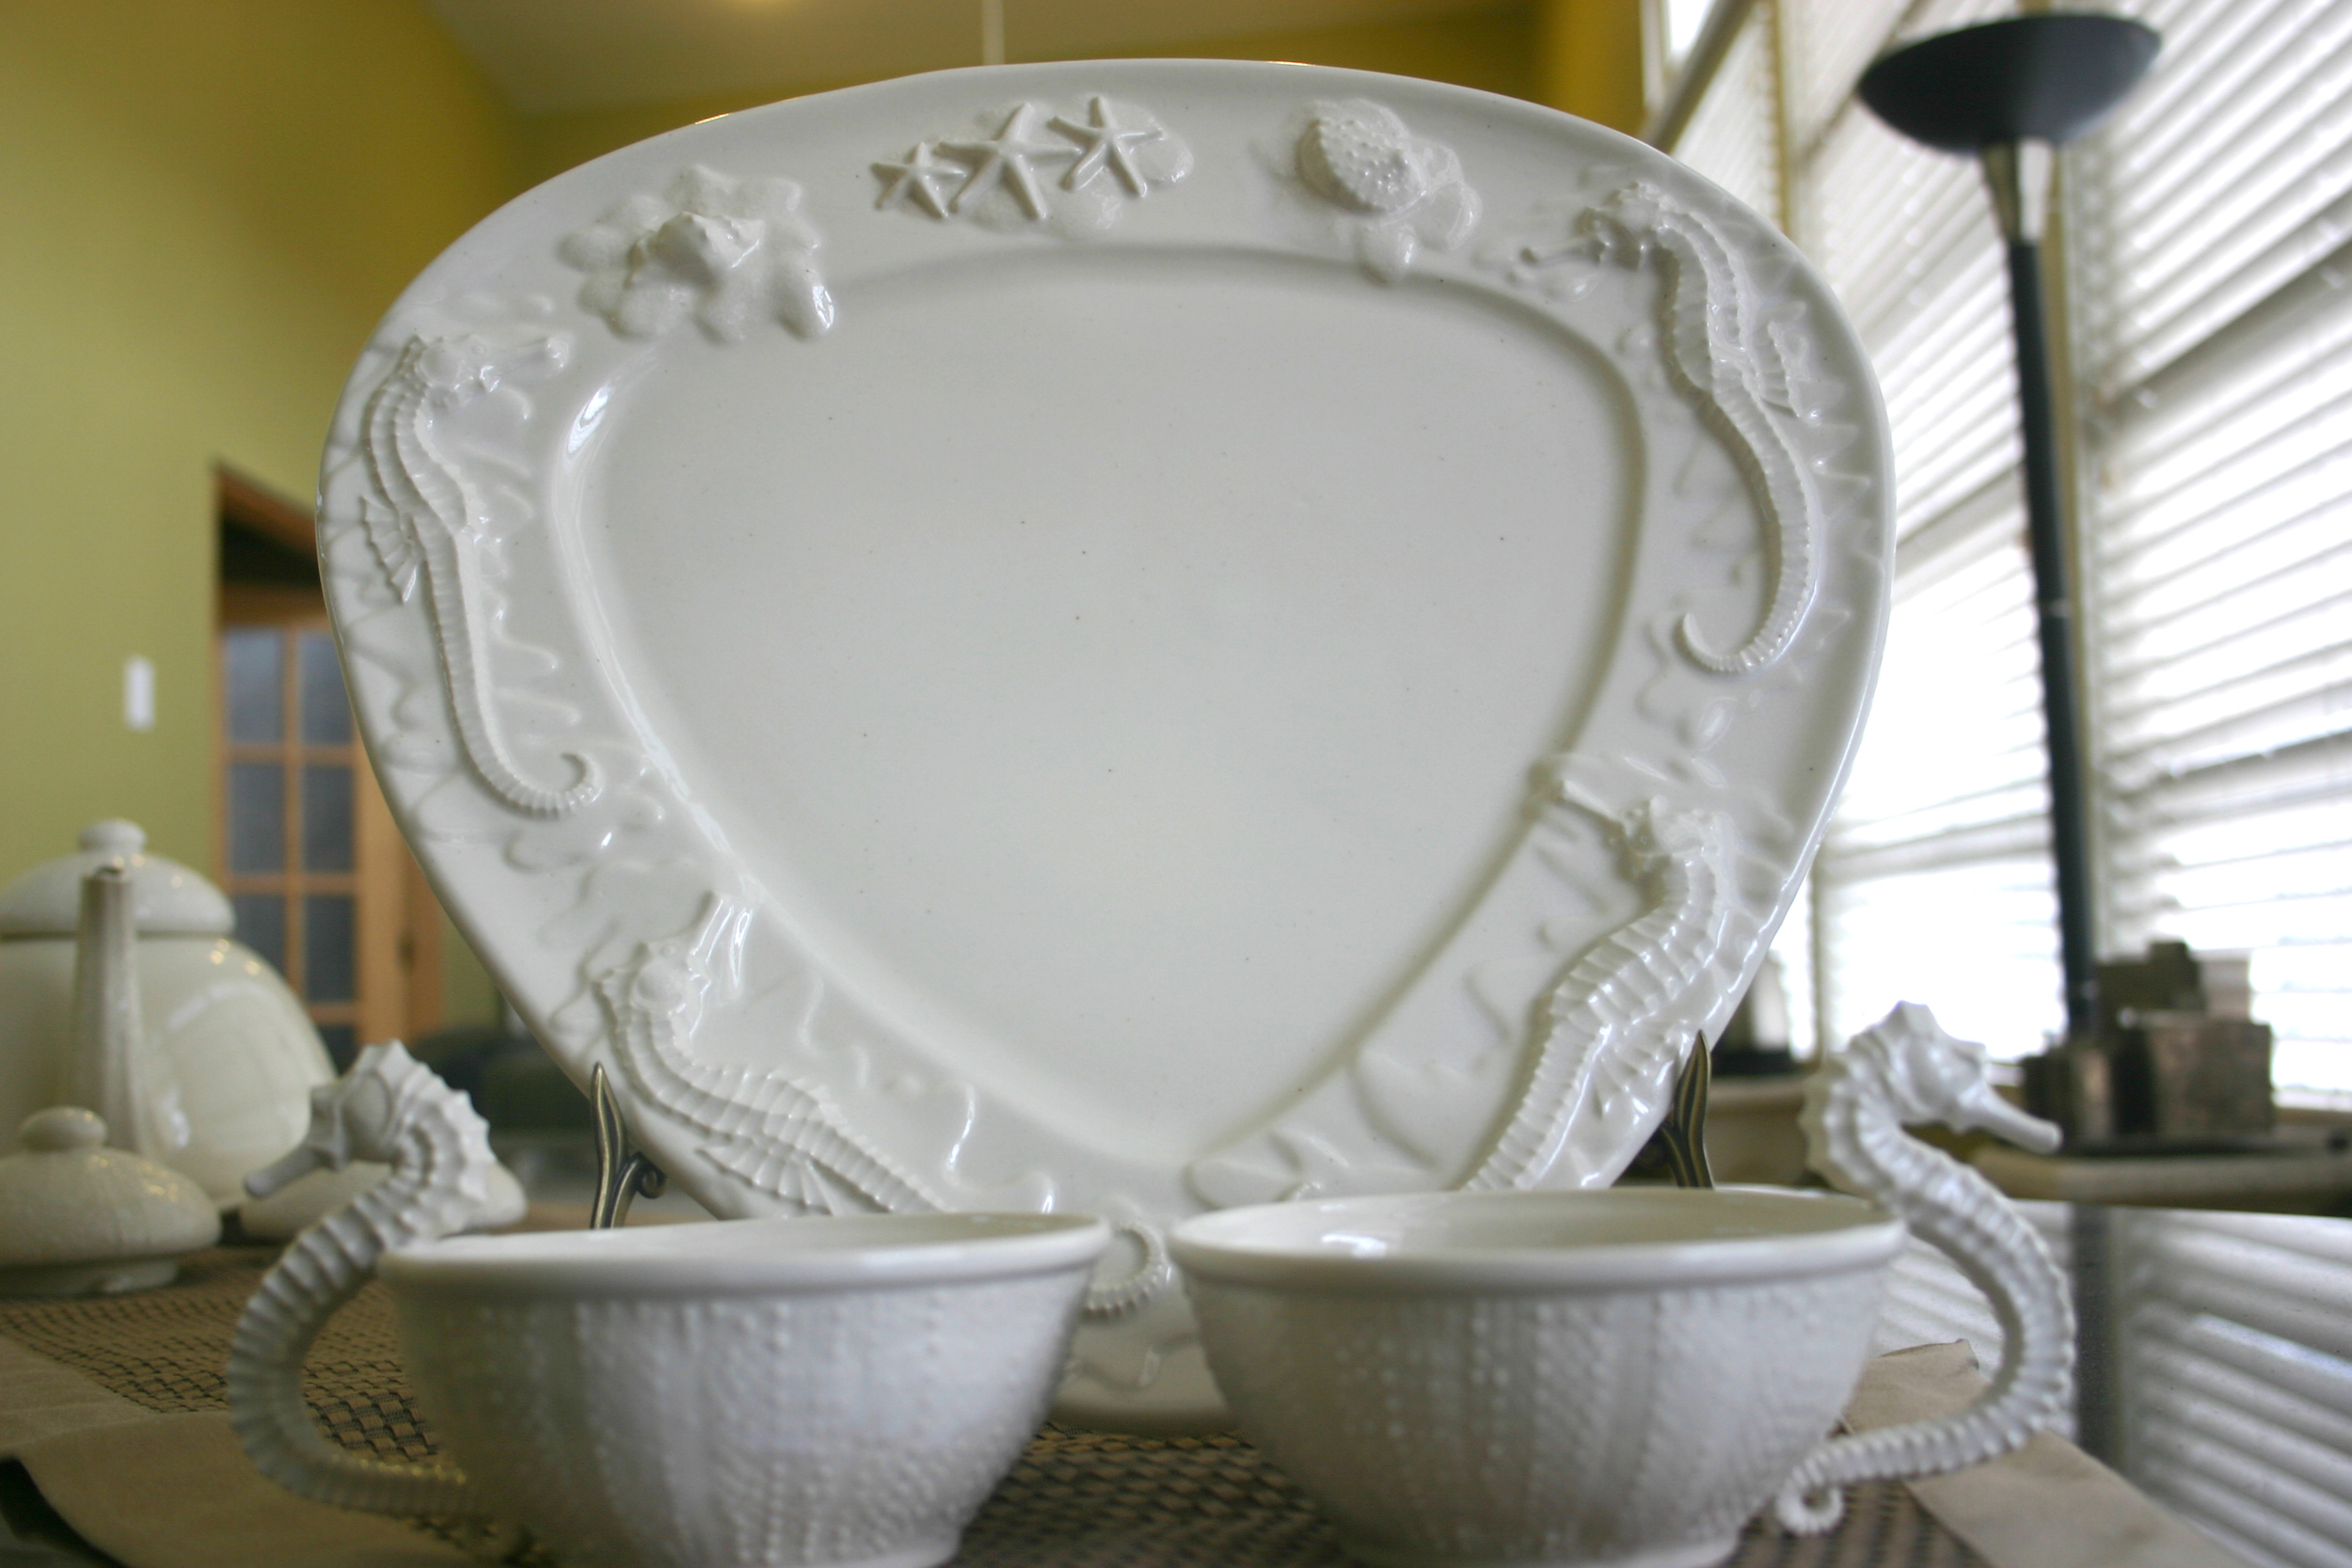 Seahorse & Starfish Platter with teacups